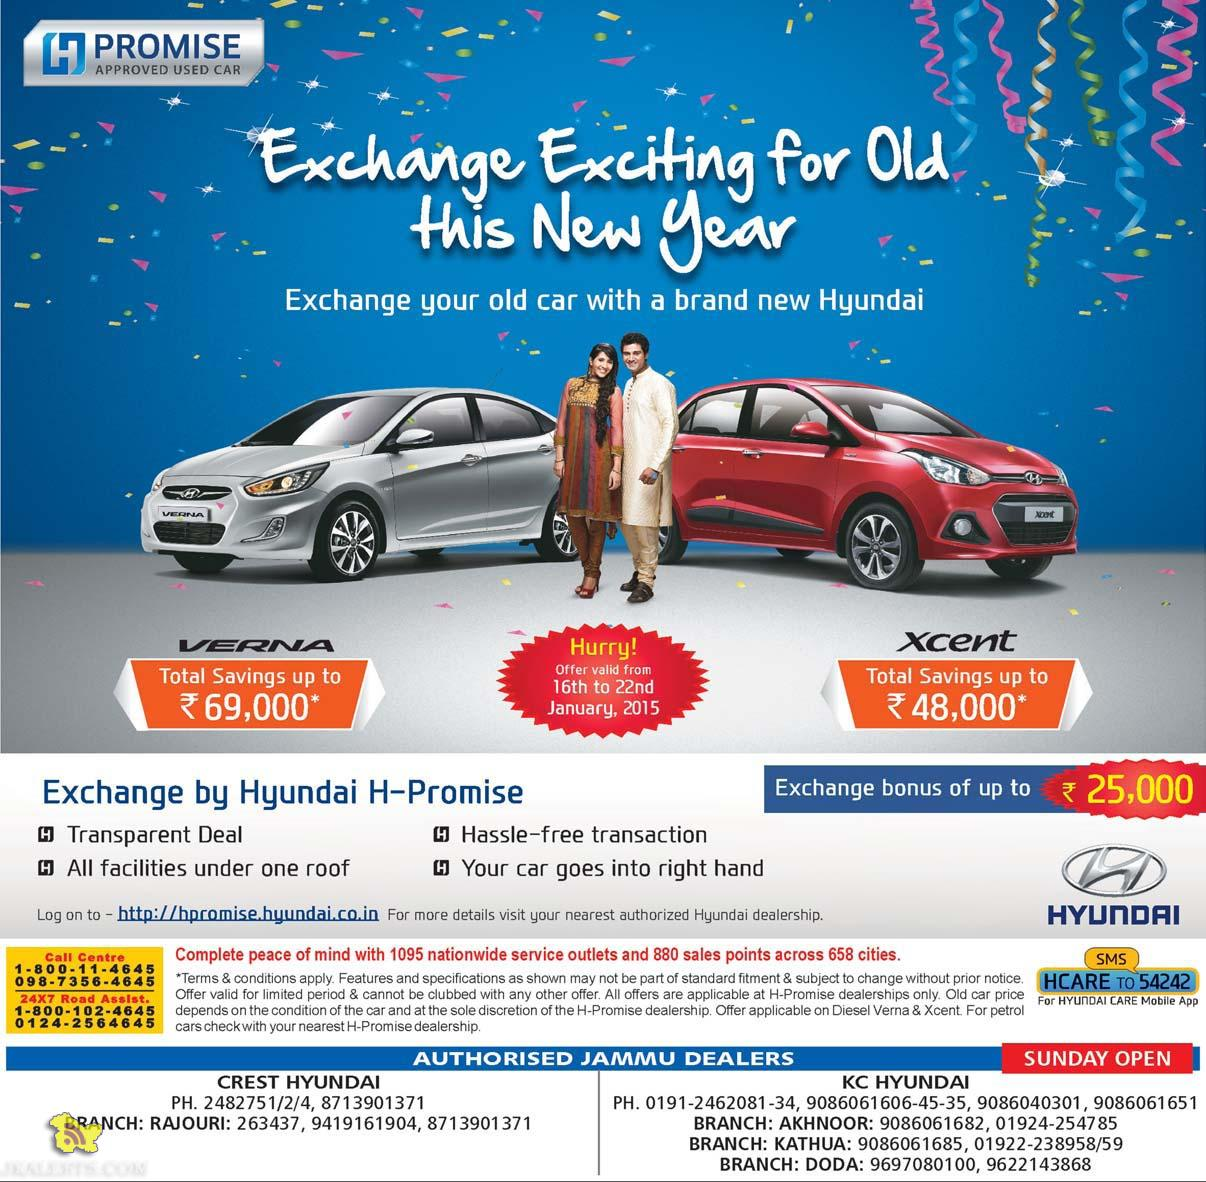 Hyundai Exchange offer, exchange your old car with a brand new Hyundai